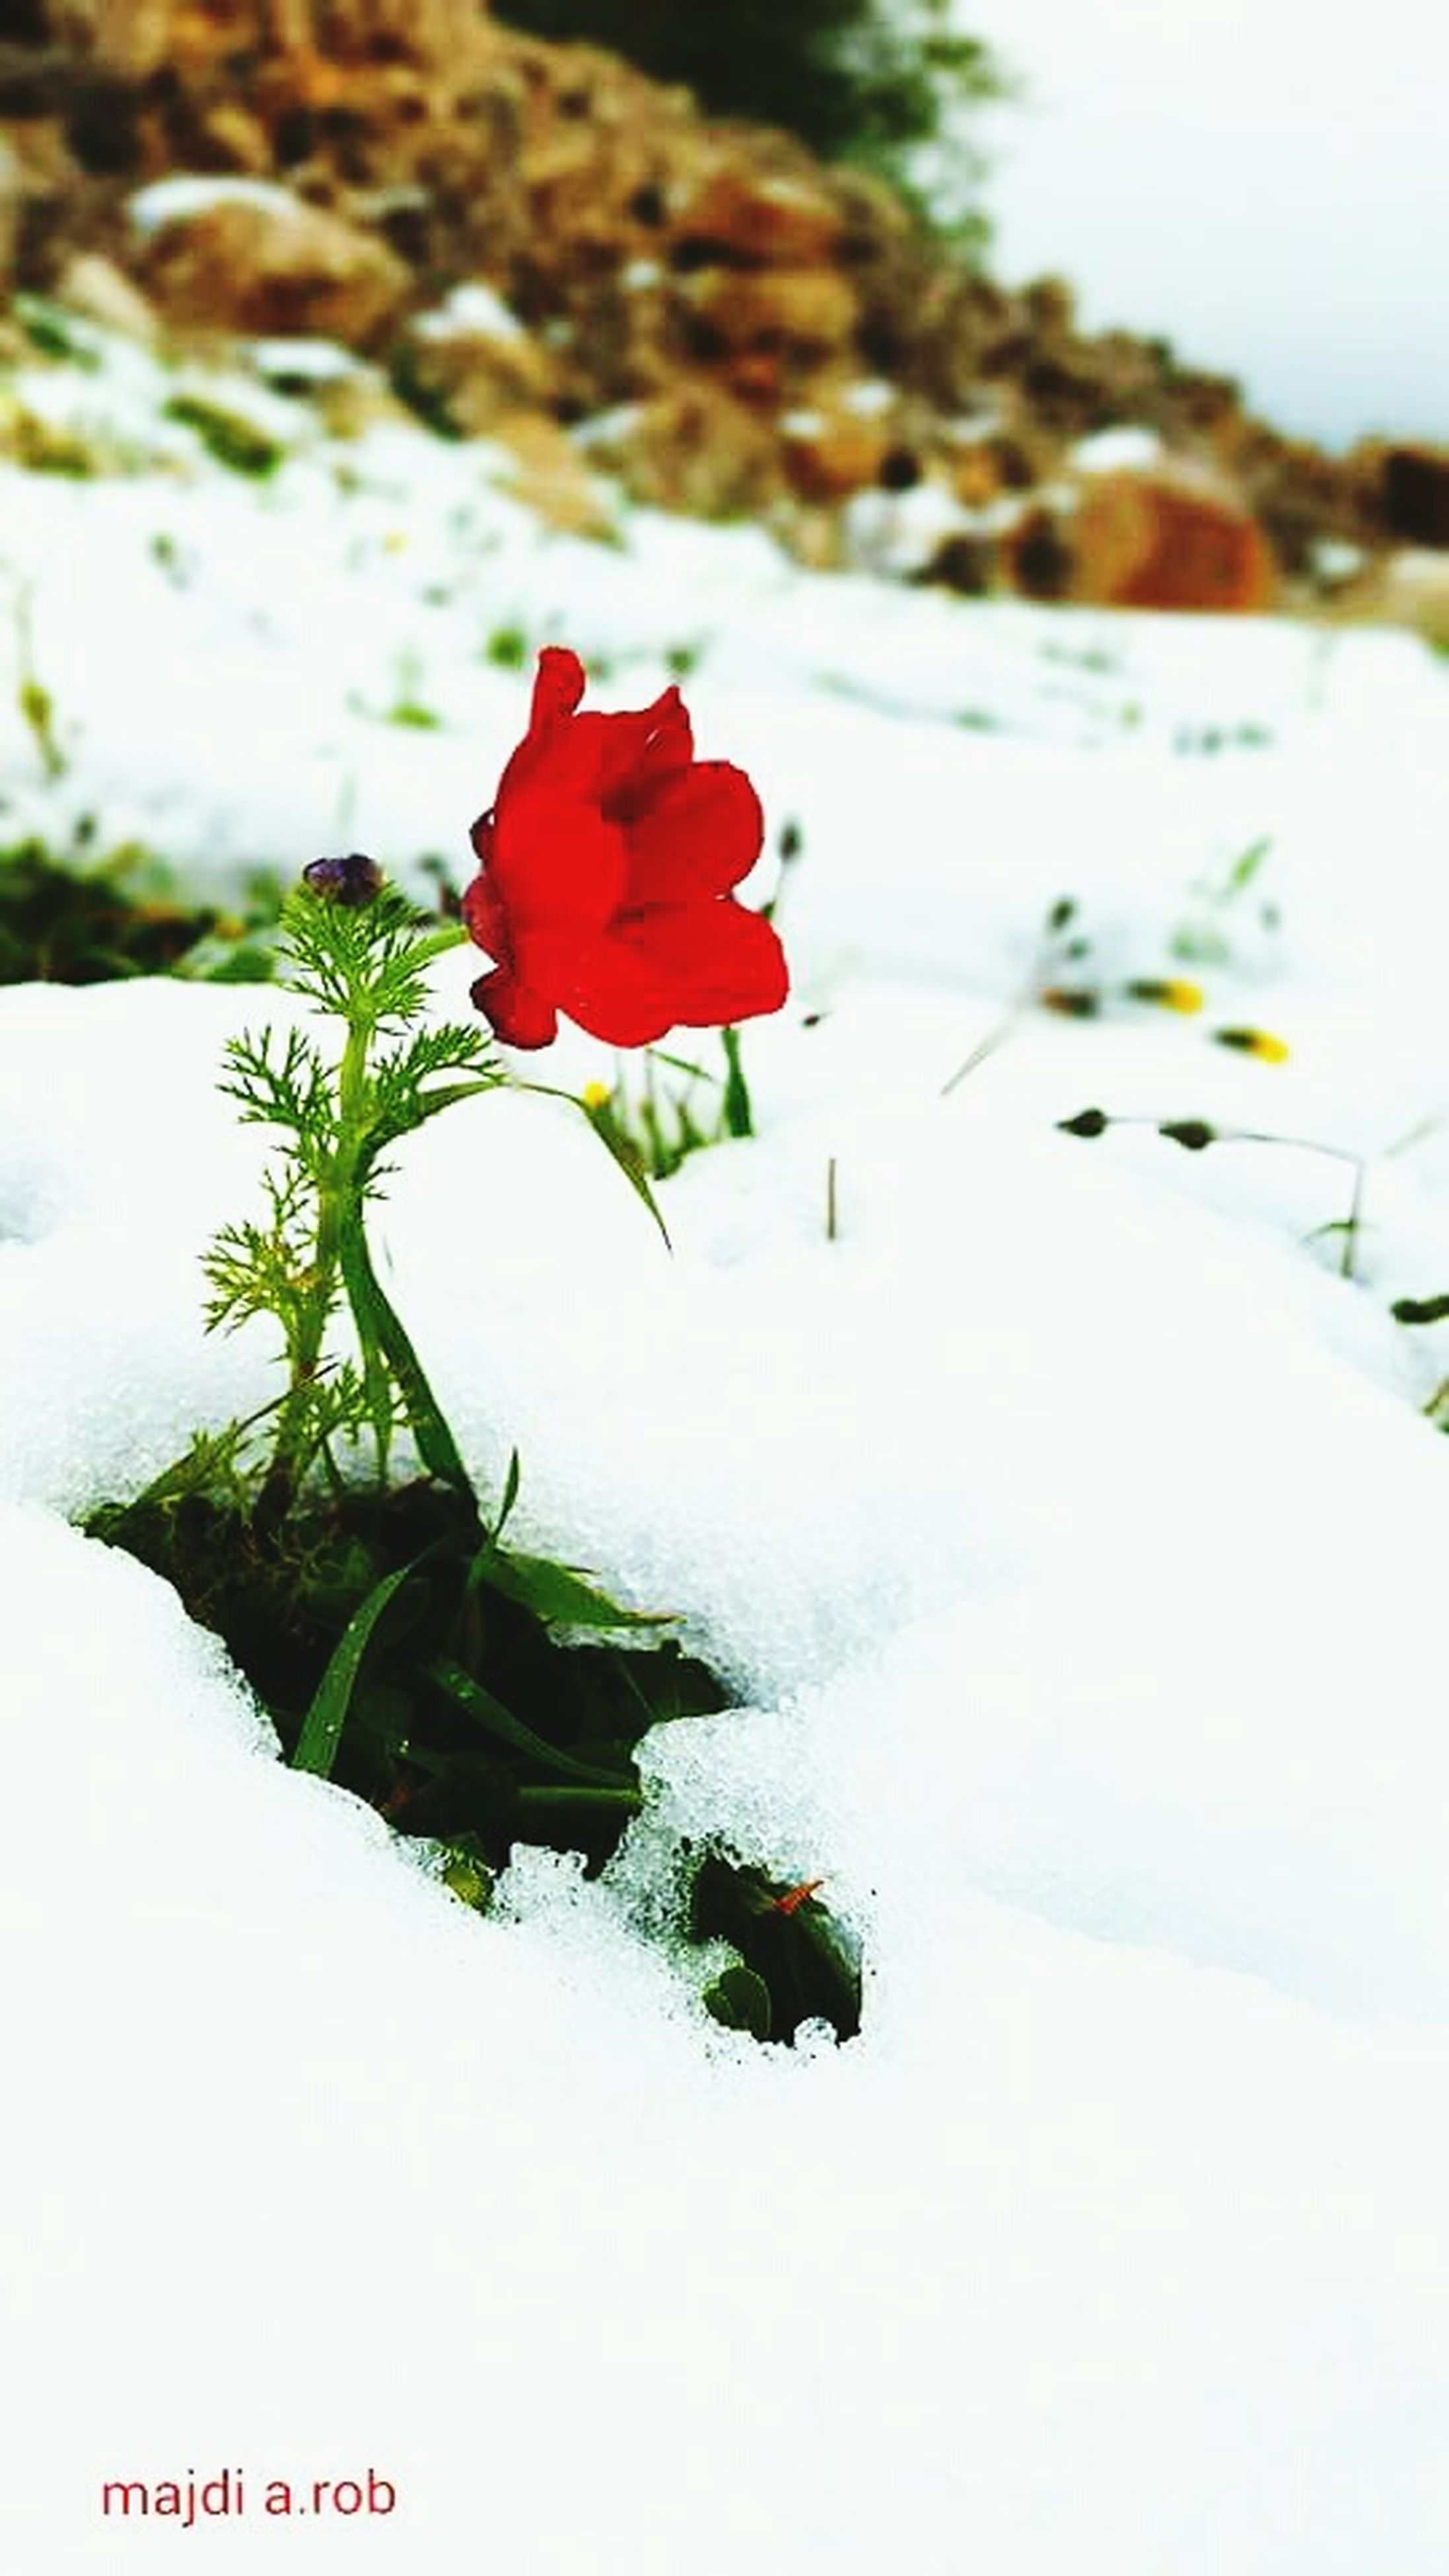 flower, focus on foreground, red, petal, fragility, beauty in nature, close-up, growth, nature, plant, white color, flower head, freshness, blooming, day, outdoors, no people, selective focus, leaf, tranquility